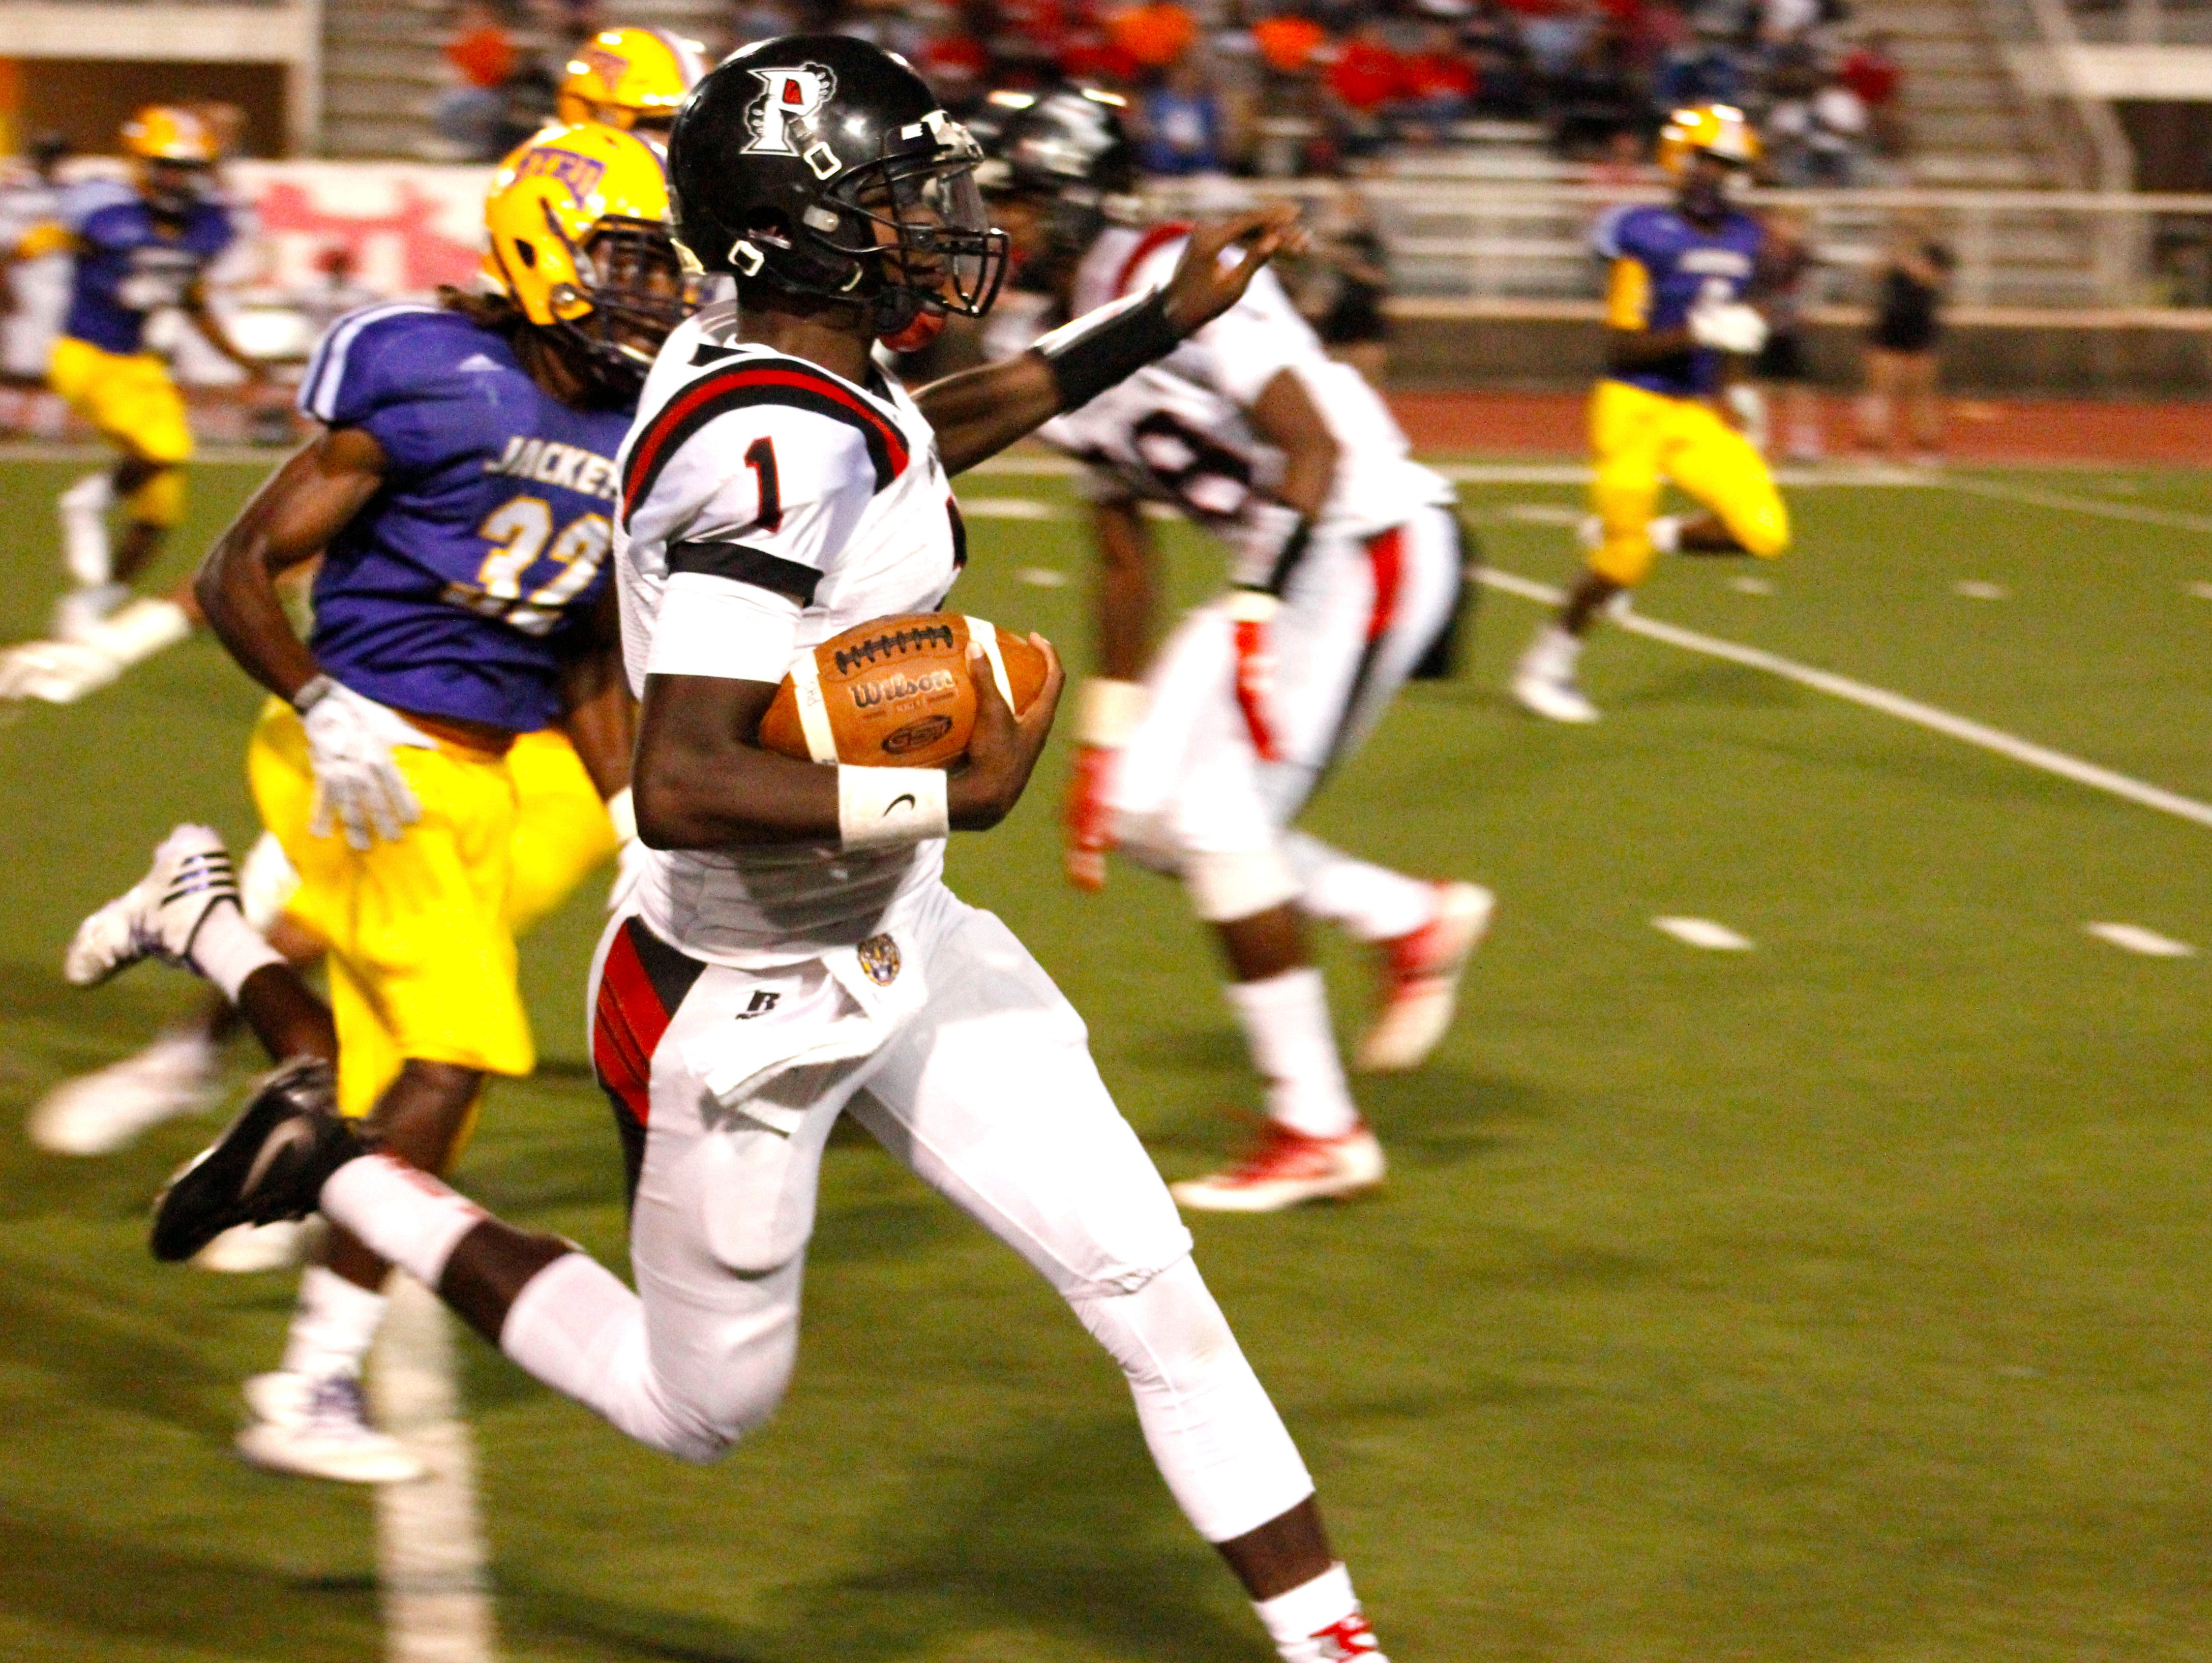 Parkway's Justin Rogers runs for yardage earlier this season against Byrd. Rogers finished second in the state in passing yards.